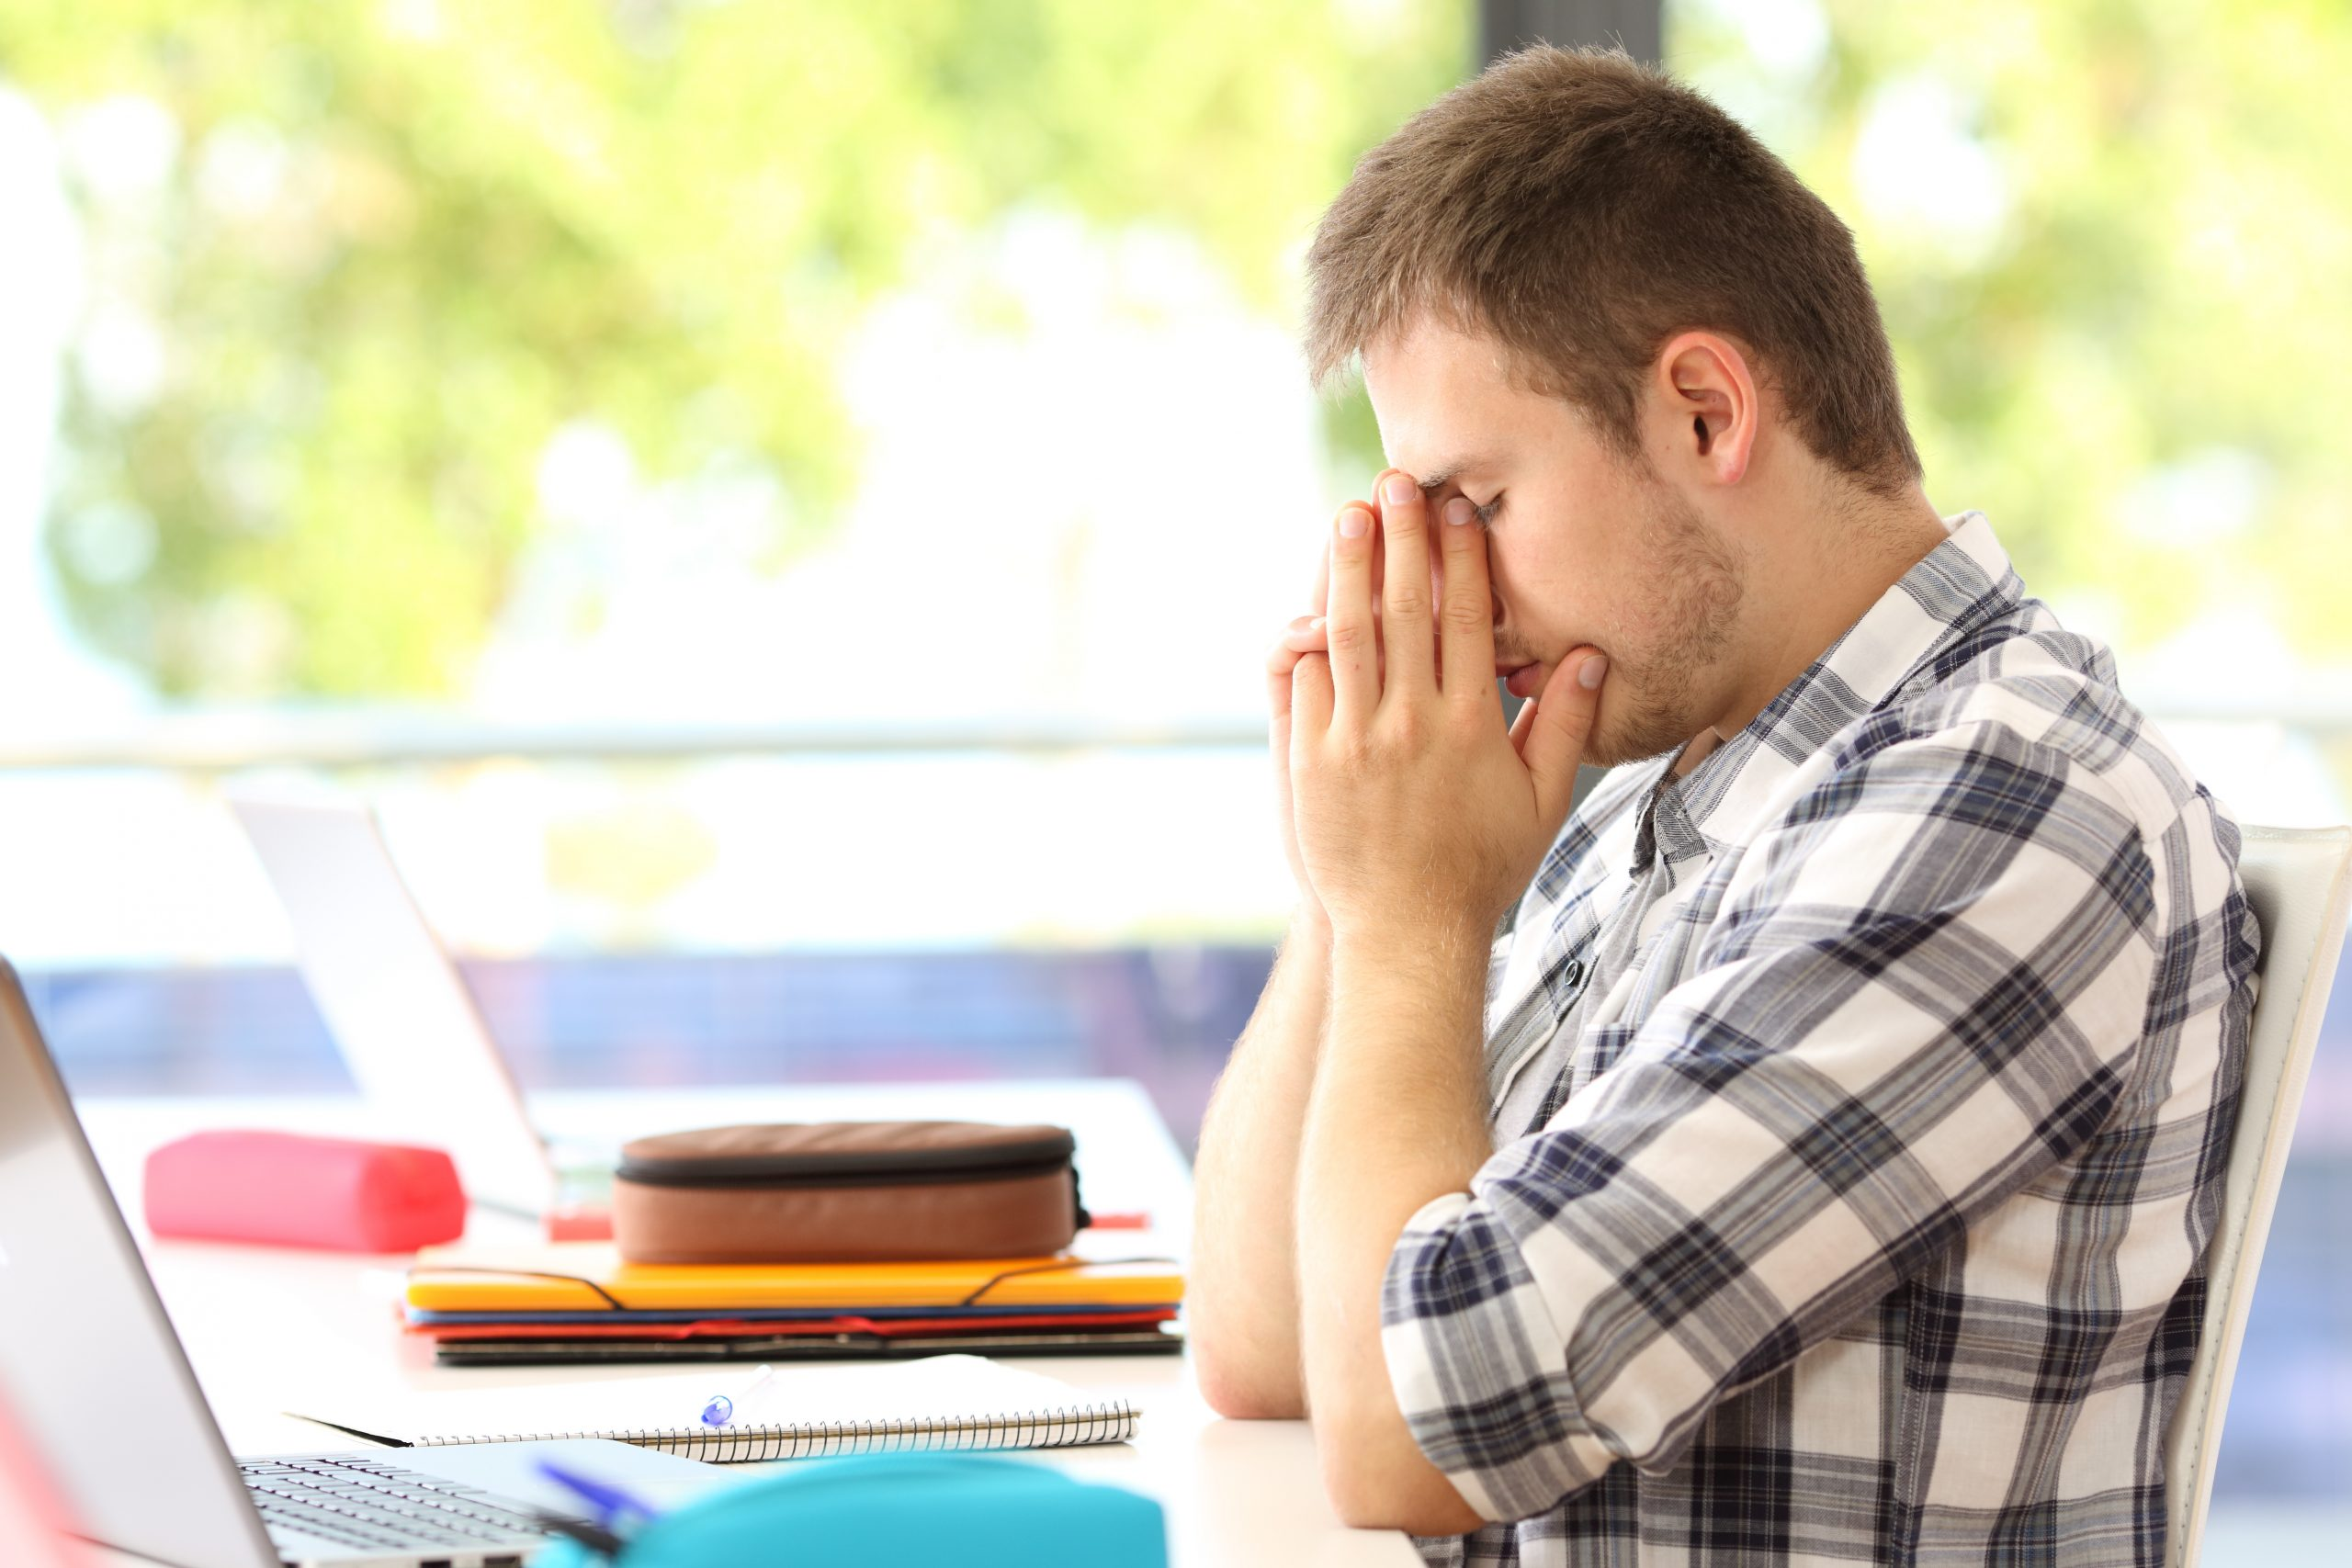 Stressed student from emergency removal